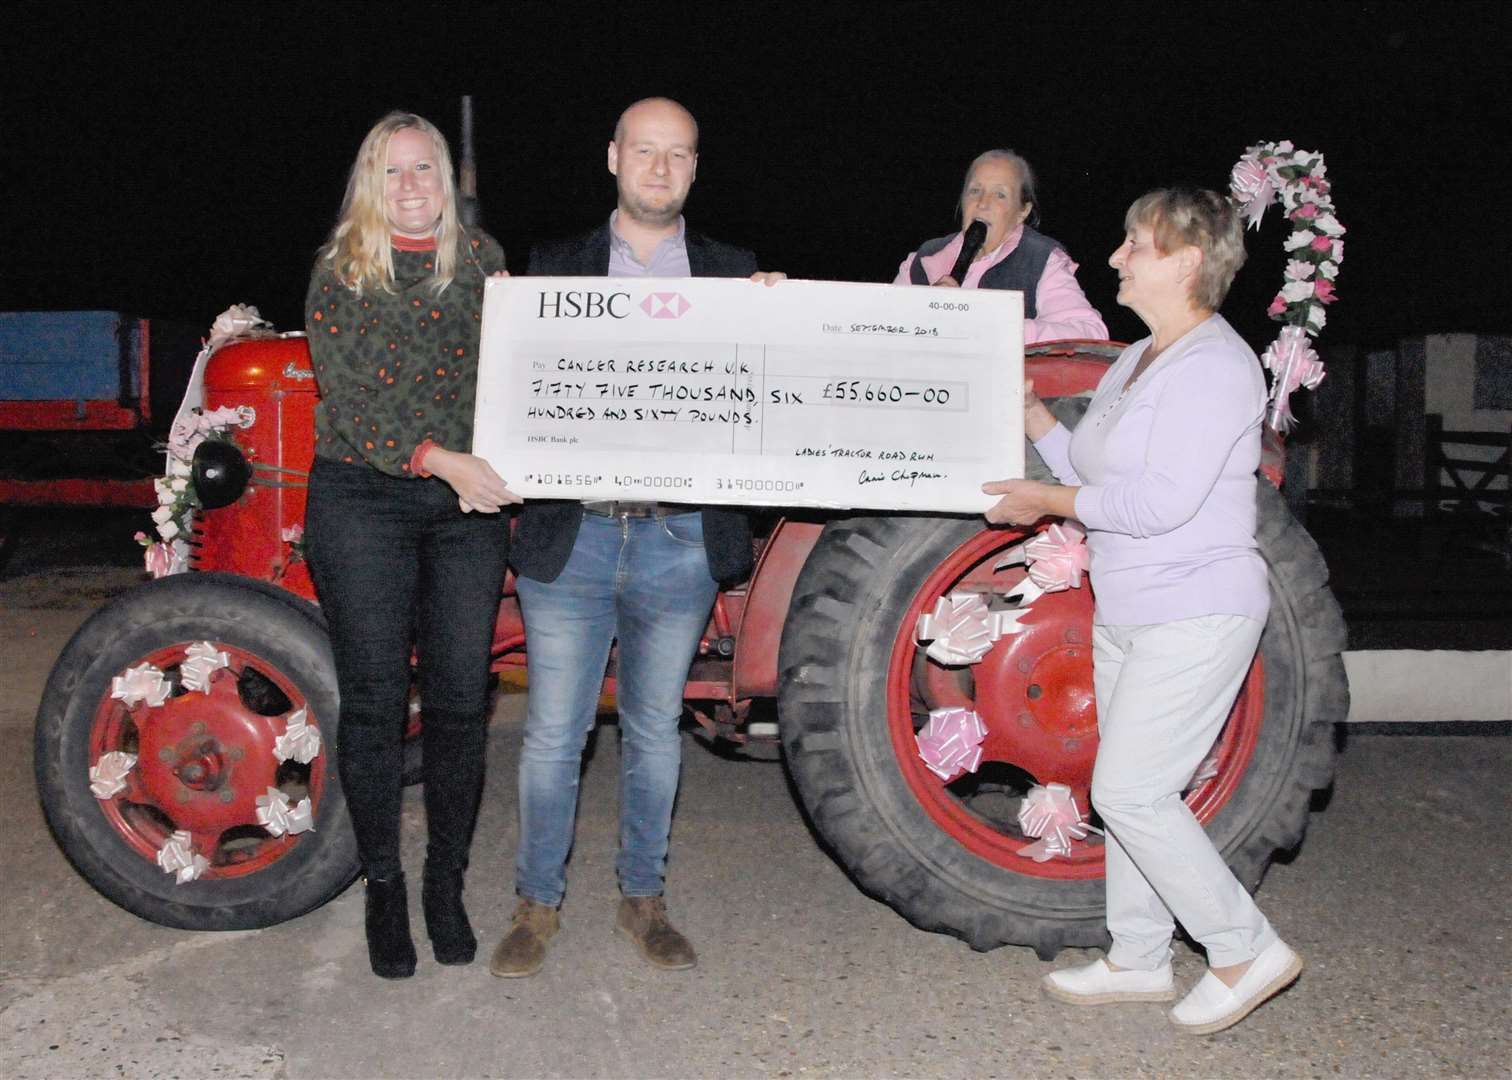 Nicholas Whymark, Alex Horne from Cancer Research UK with tractor run organiser, Annie Chapman, and Carol Wiles presenting the cheque.